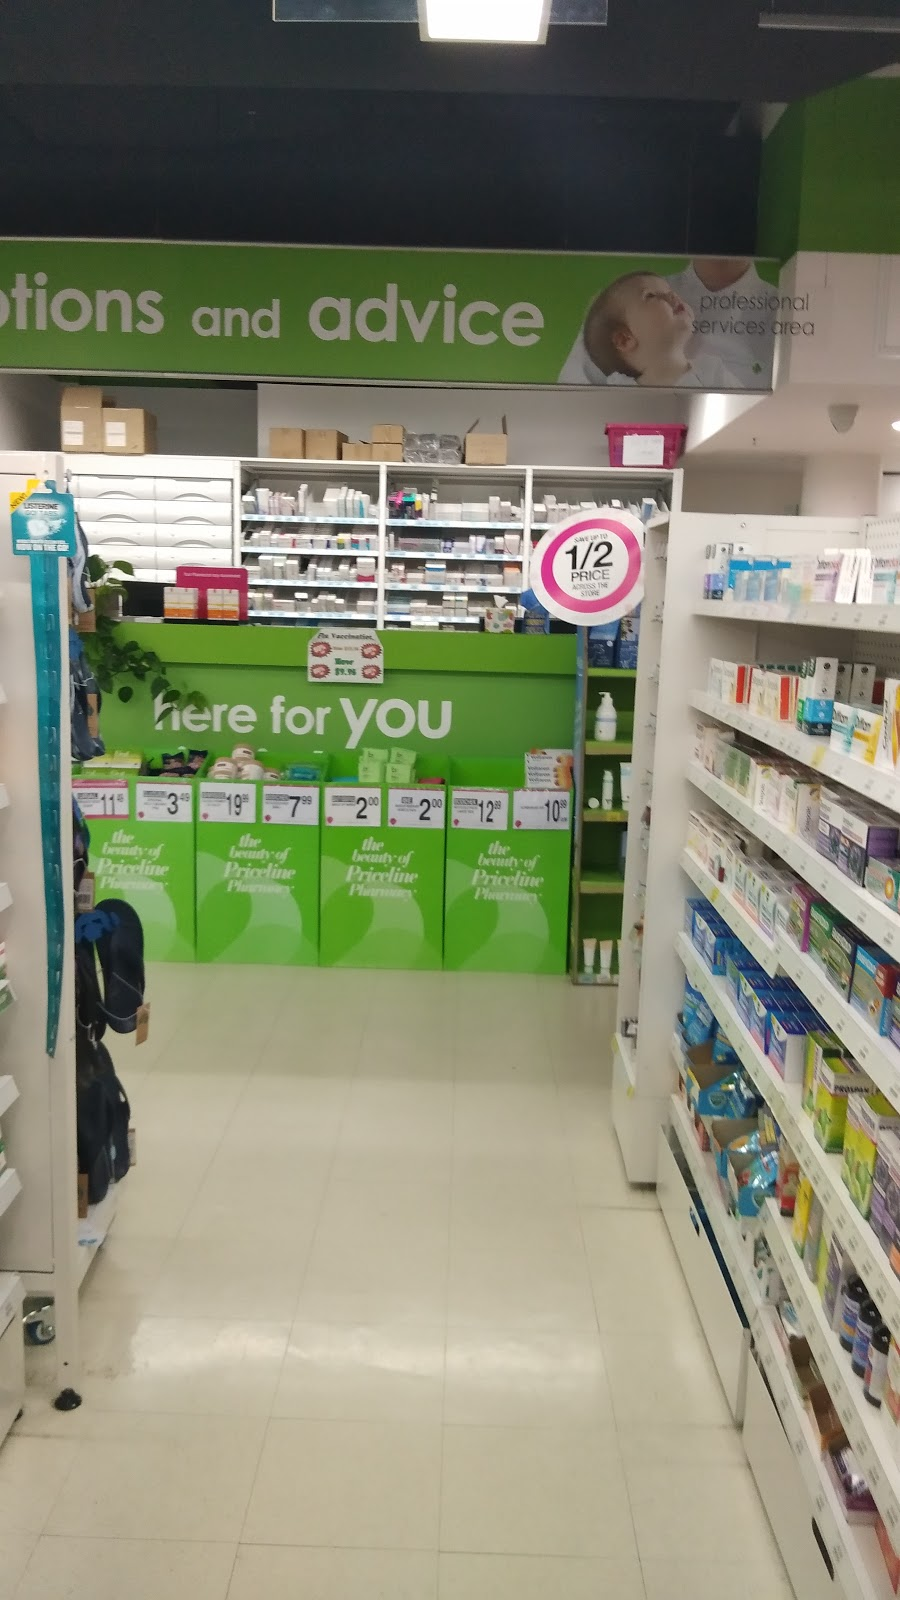 Priceline Pharmacy Spring Hill | pharmacy | 365 Turbot Street, Market Place, Spring Hill QLD 4000, Australia | 0738313331 OR +61 7 3831 3331